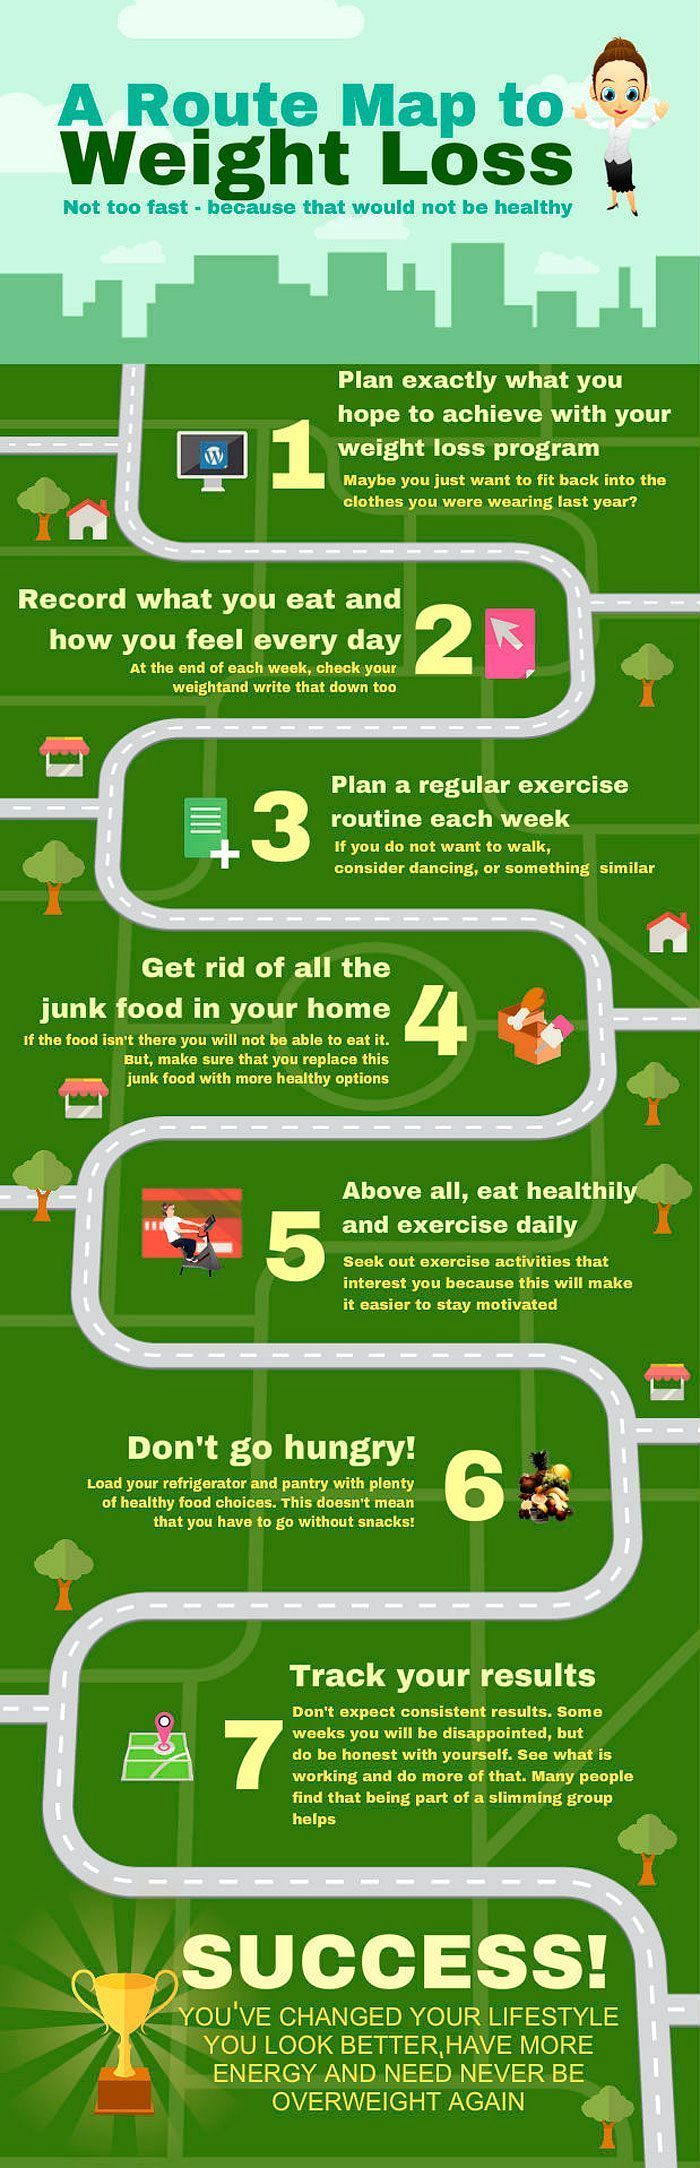 Losing 23 pounds in 21 days would change your life. But how on earth can you lose so much weight so fast. And how can you do it in a SAFE manner? Route map to weight loss